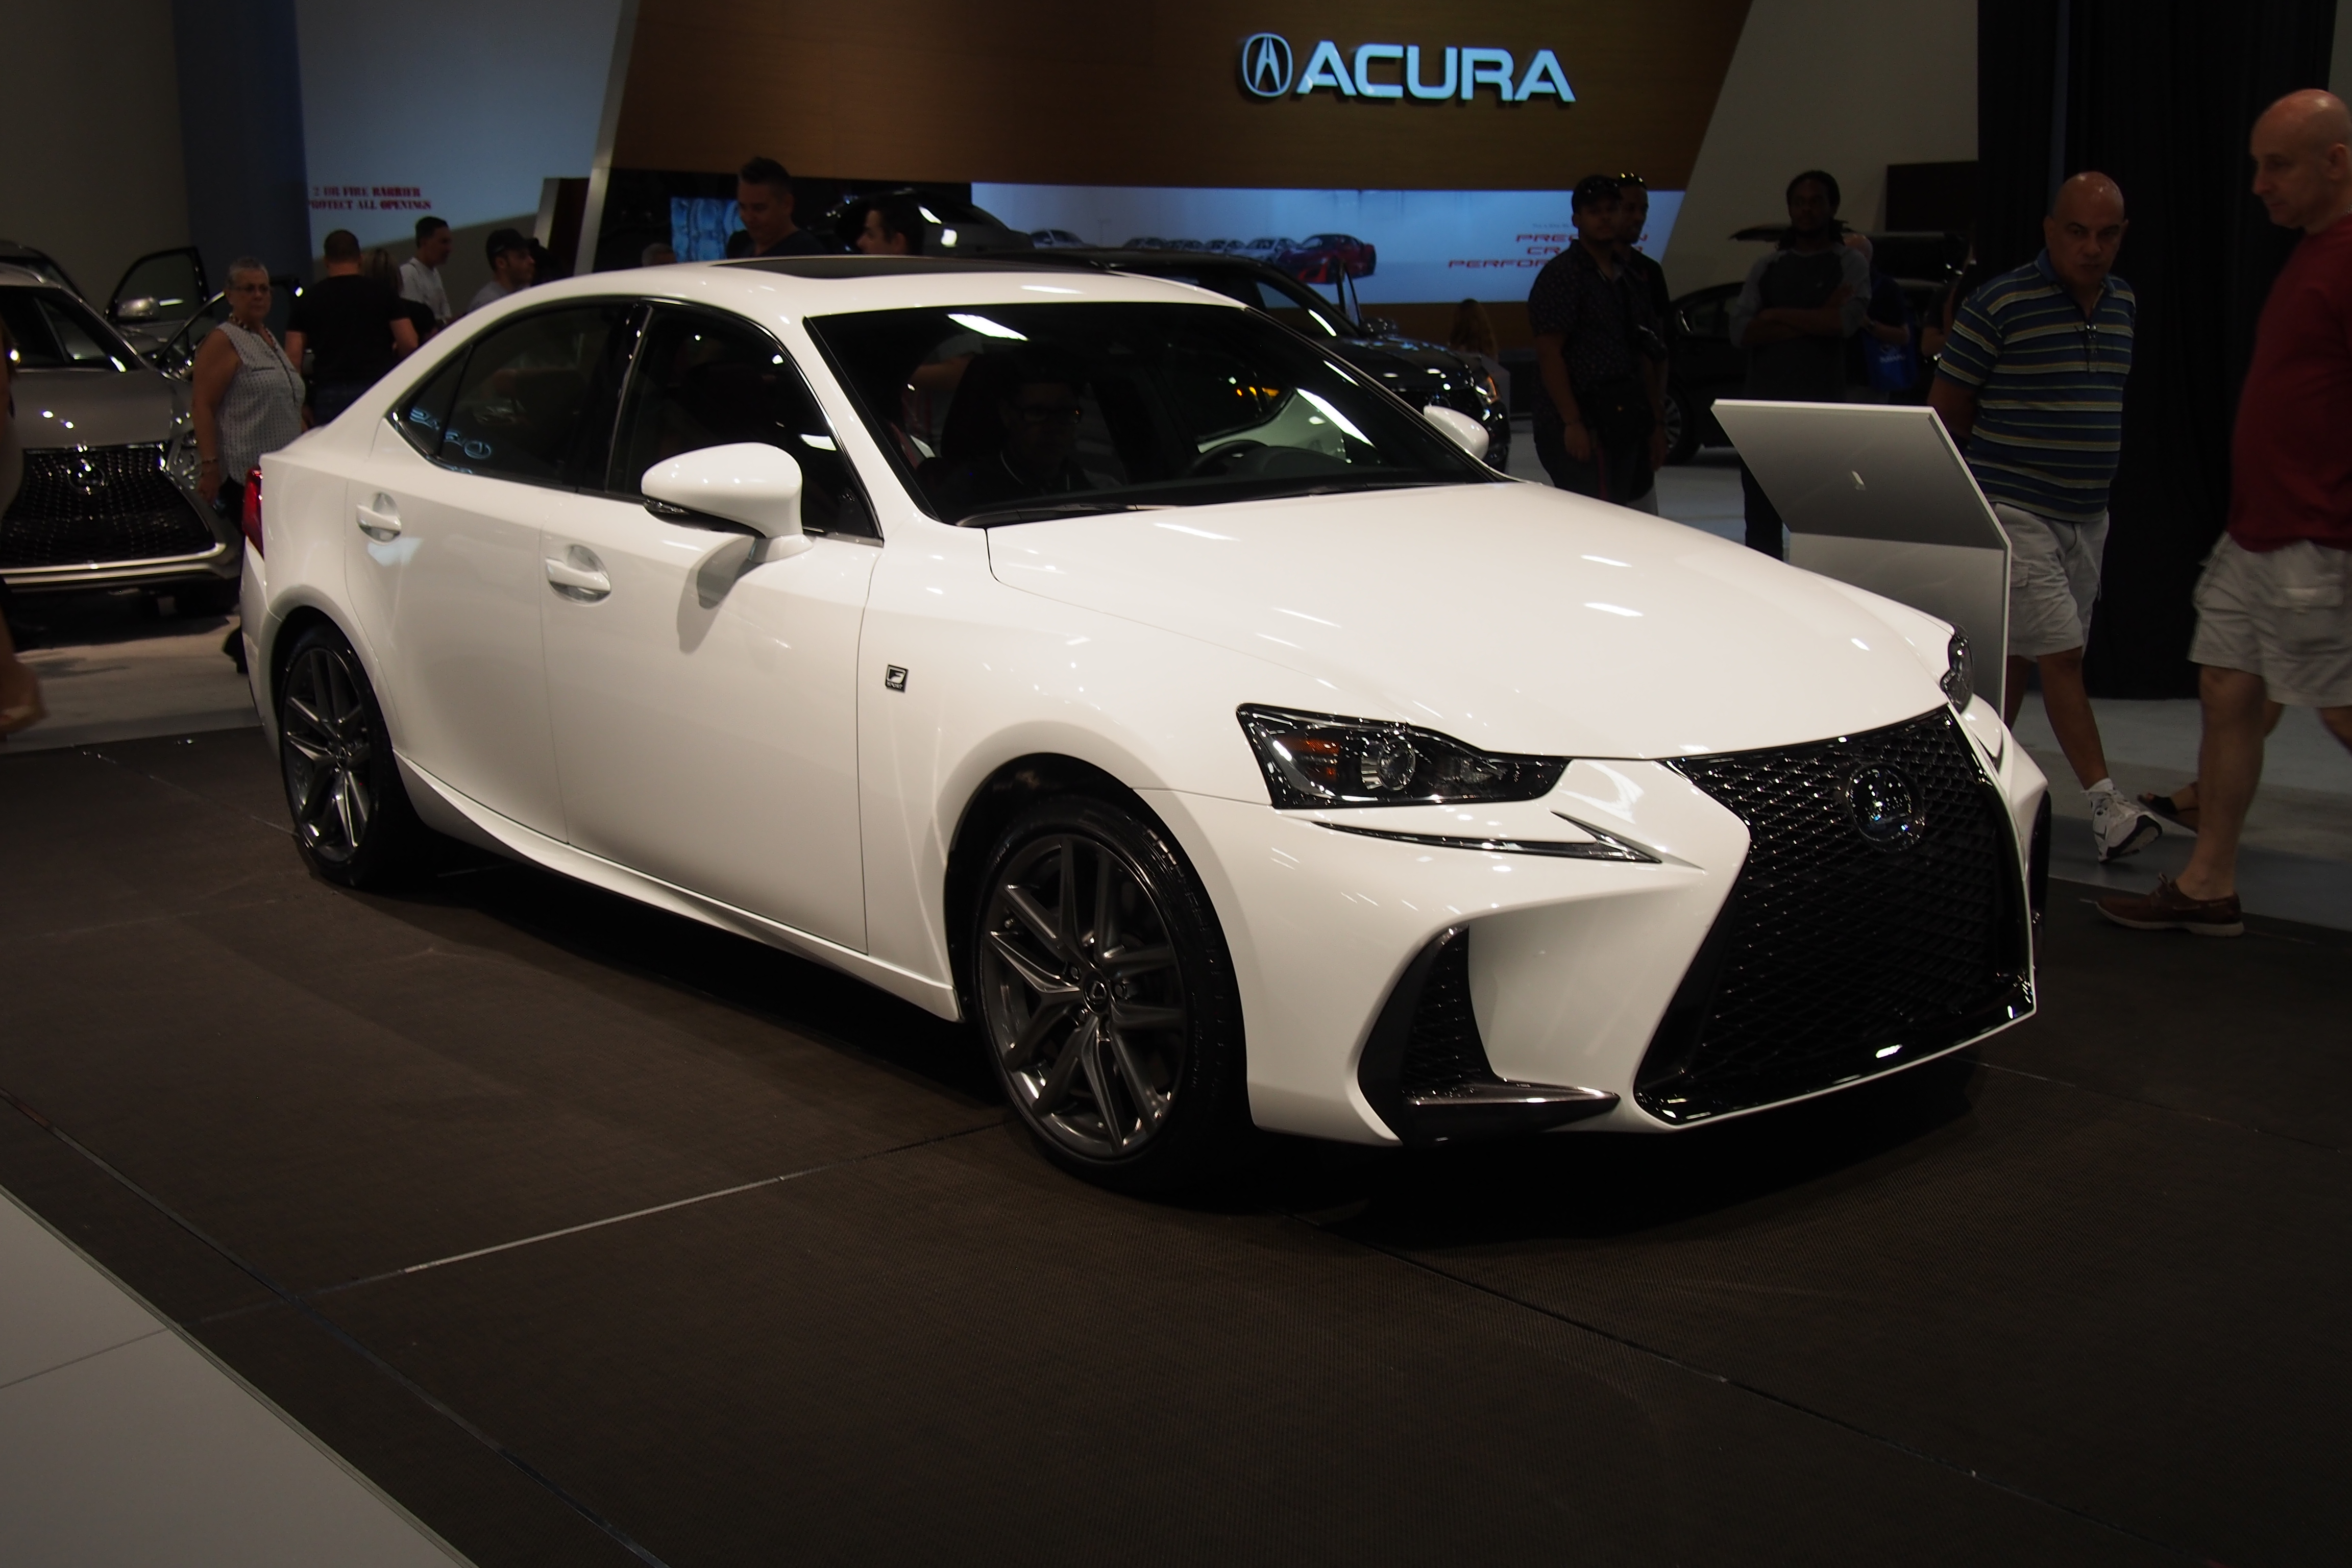 http://www.autoguide.com/blog/wp-content/gallery/2017-lexus-is-live-photos-9-10-2016/2017-Lexus-IS-Interior-Front-03.JPG